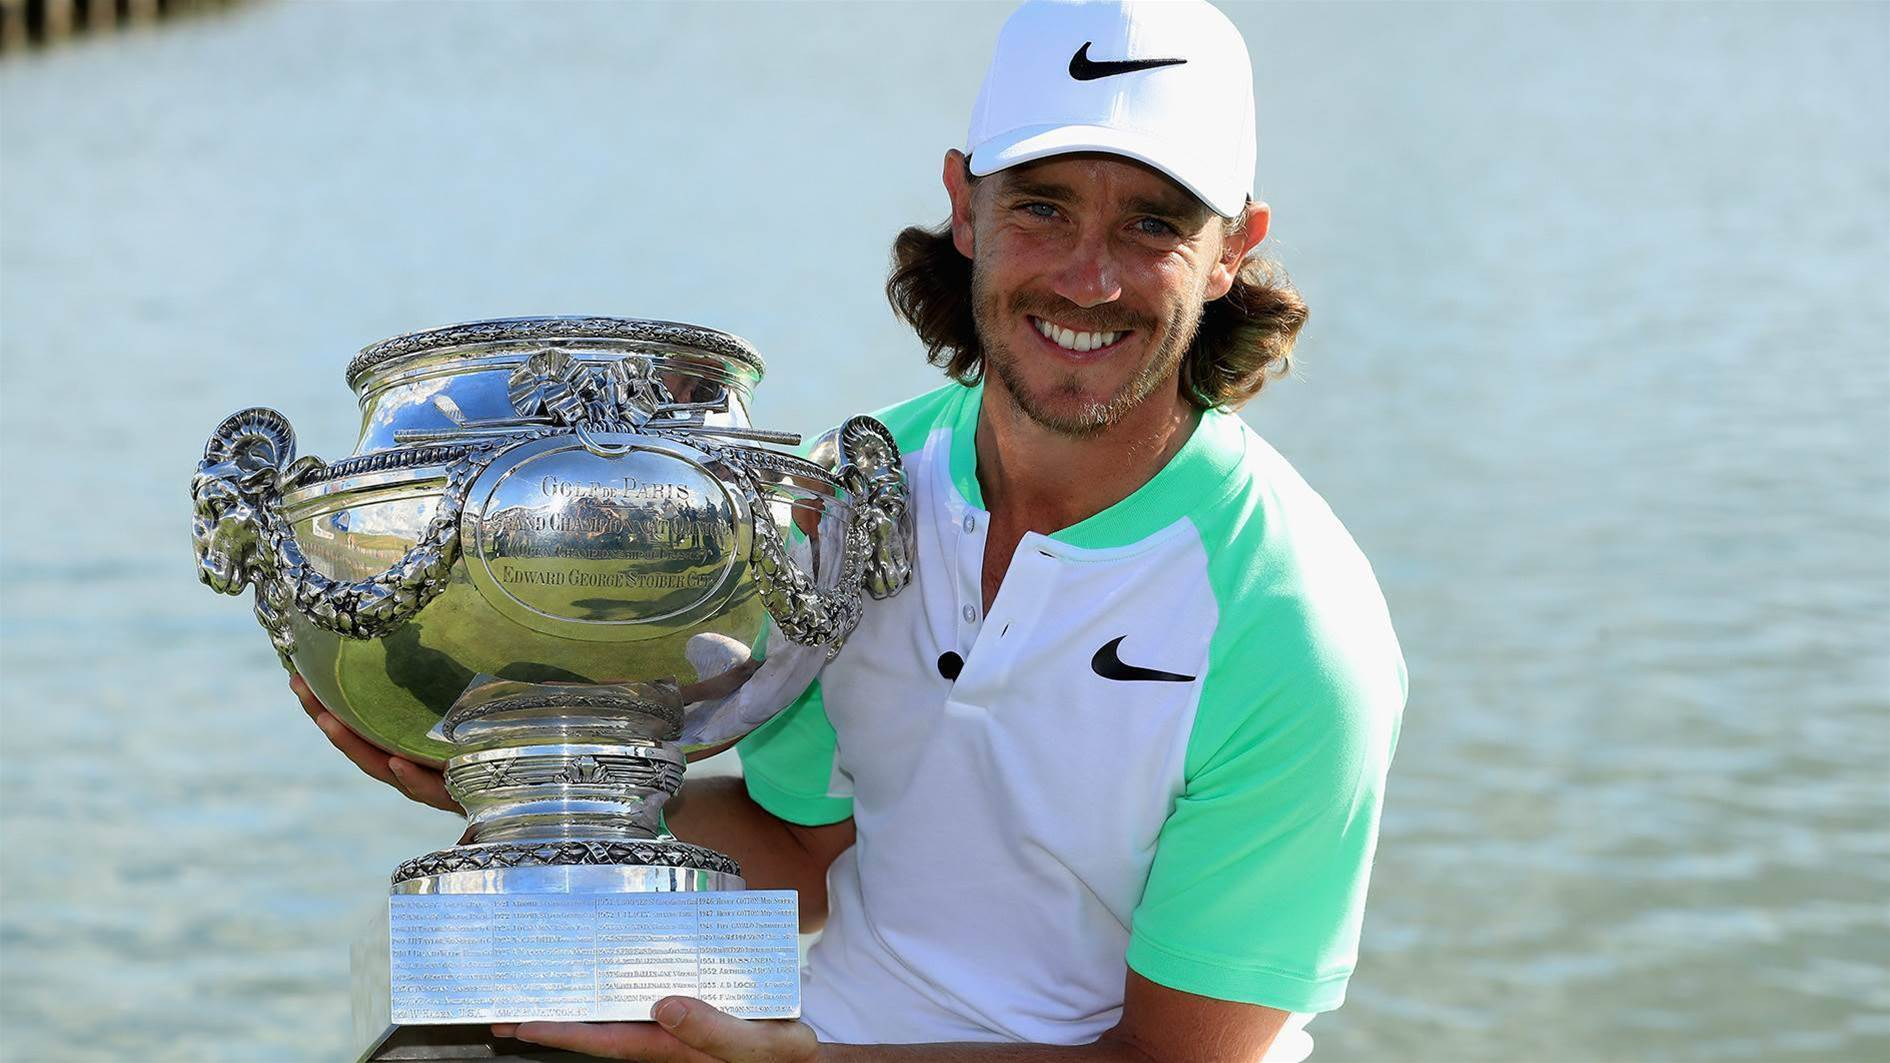 EURO TOUR: Fleetwood stakes strong Claret Jug claim